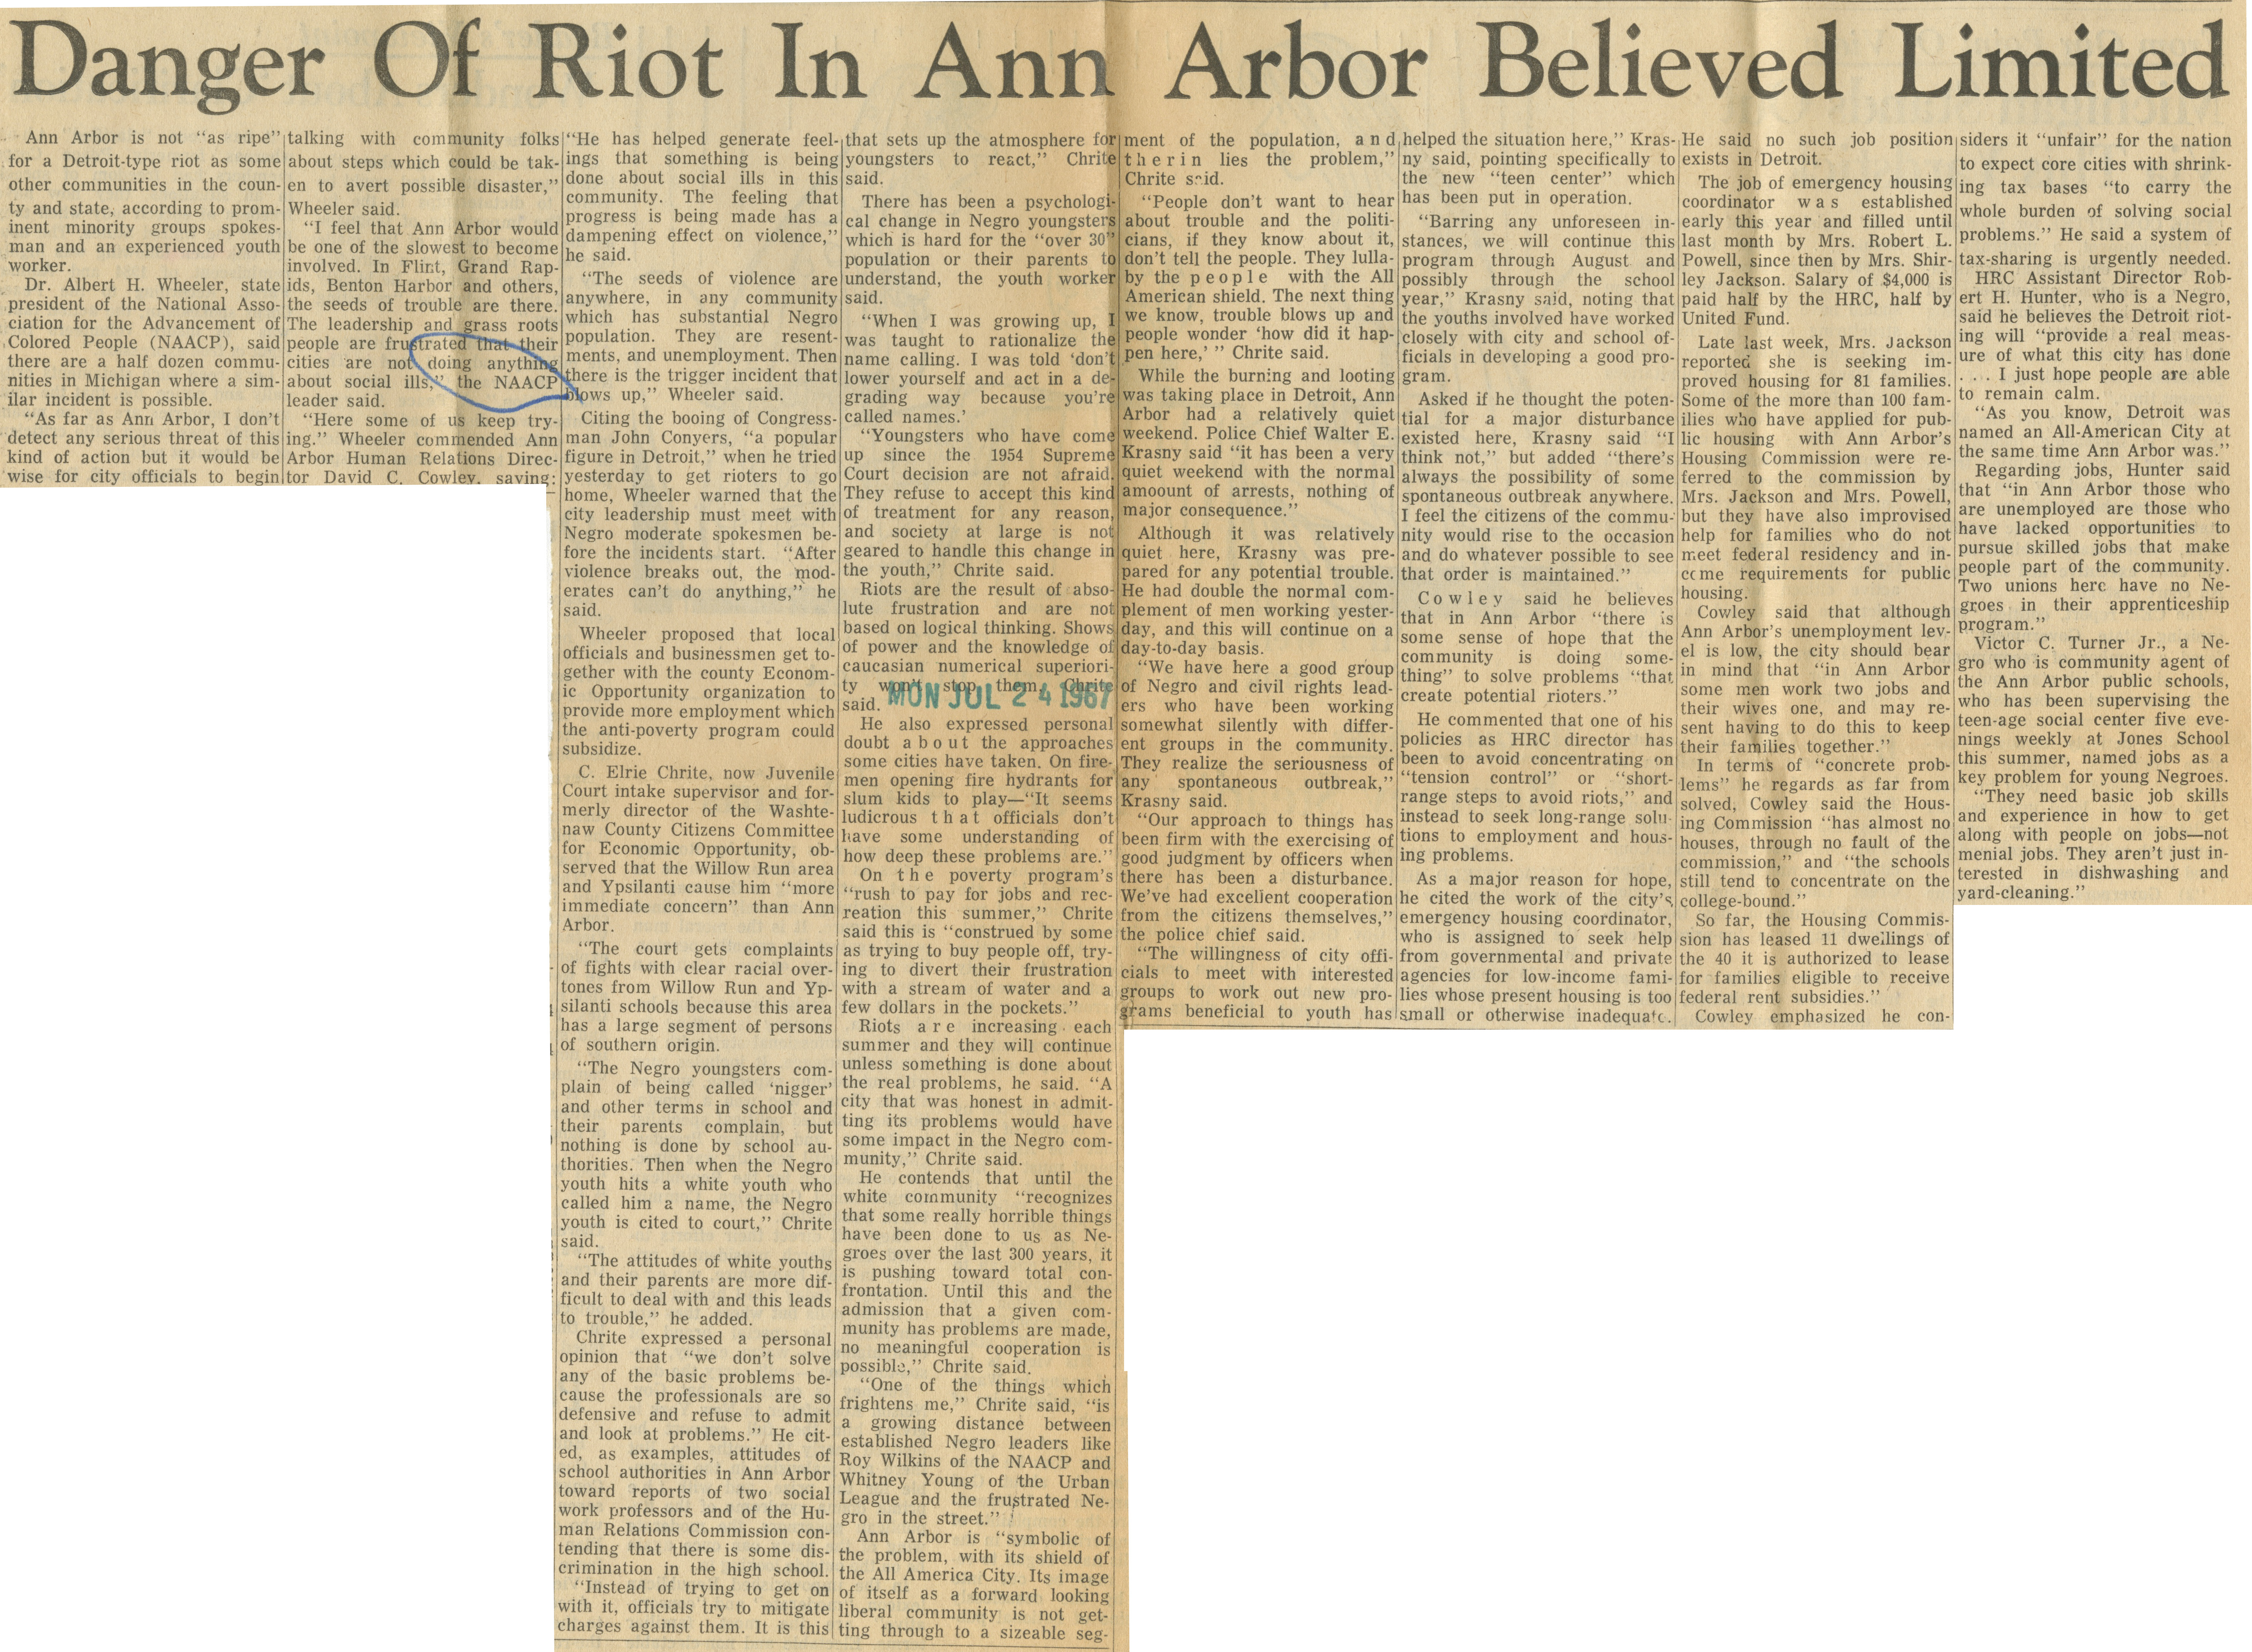 Danger Of Riot In Ann Arbor Believed Limited image